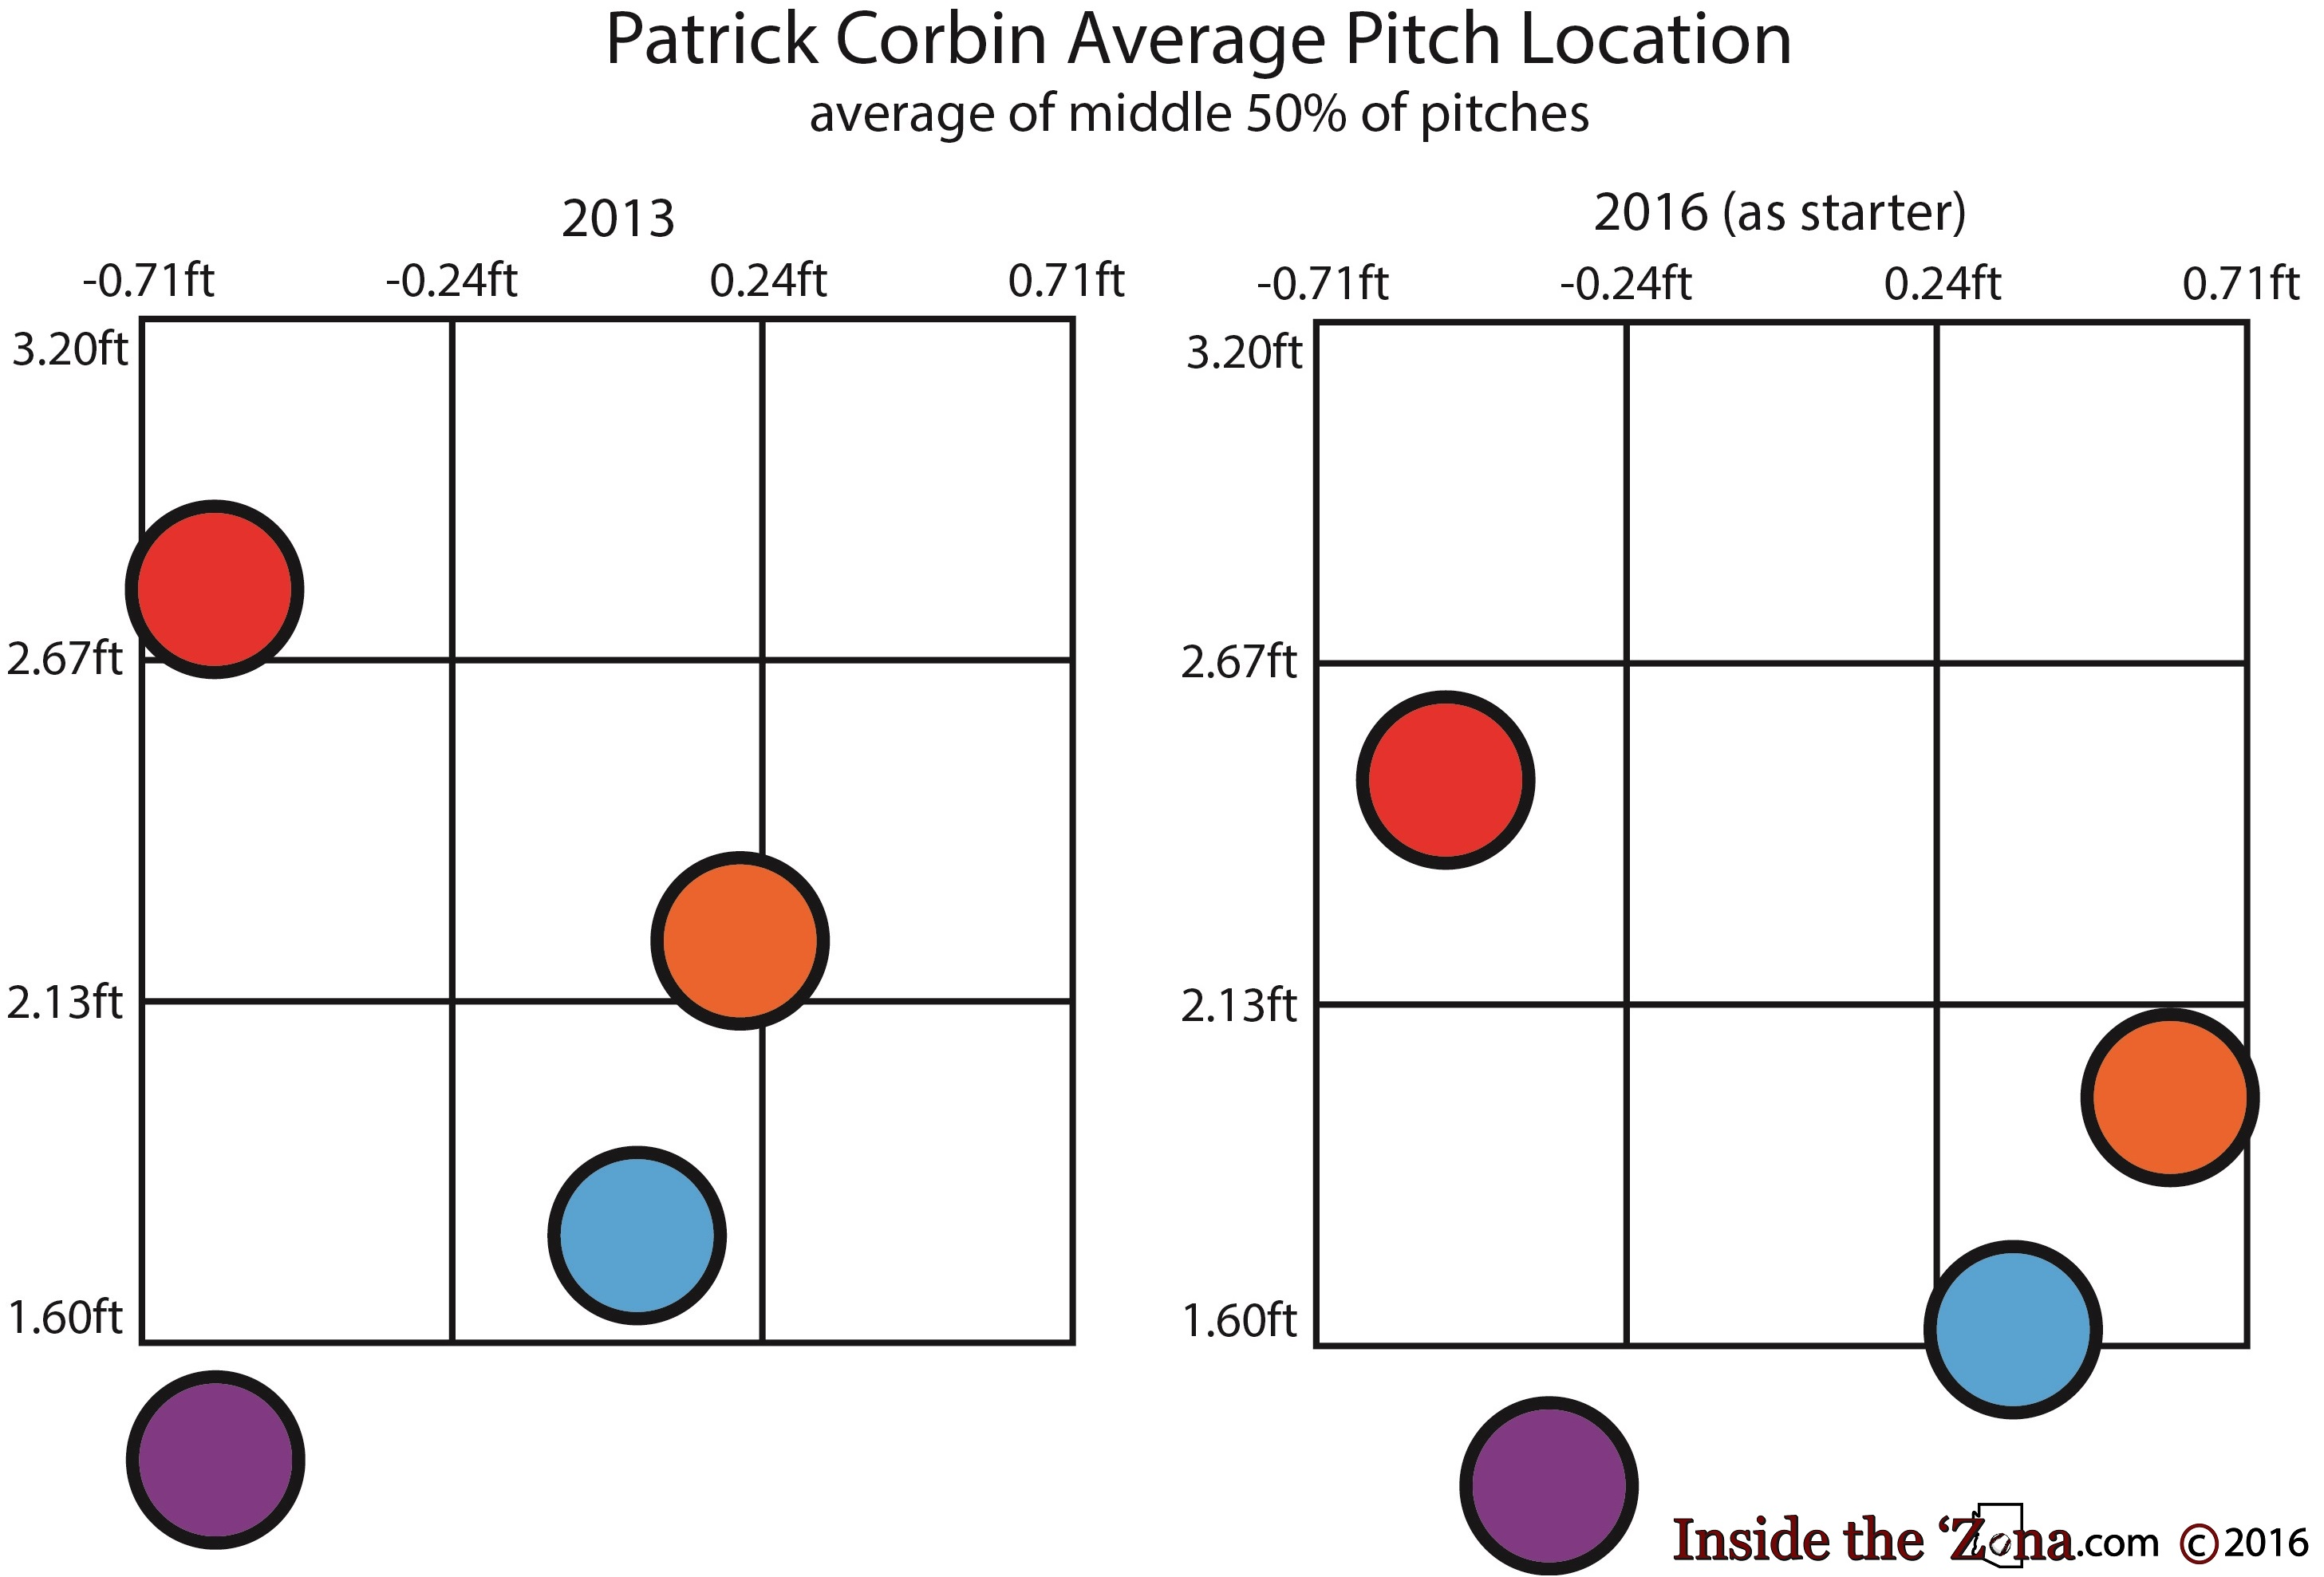 corbin-pitch-location-2013-and-2016-text